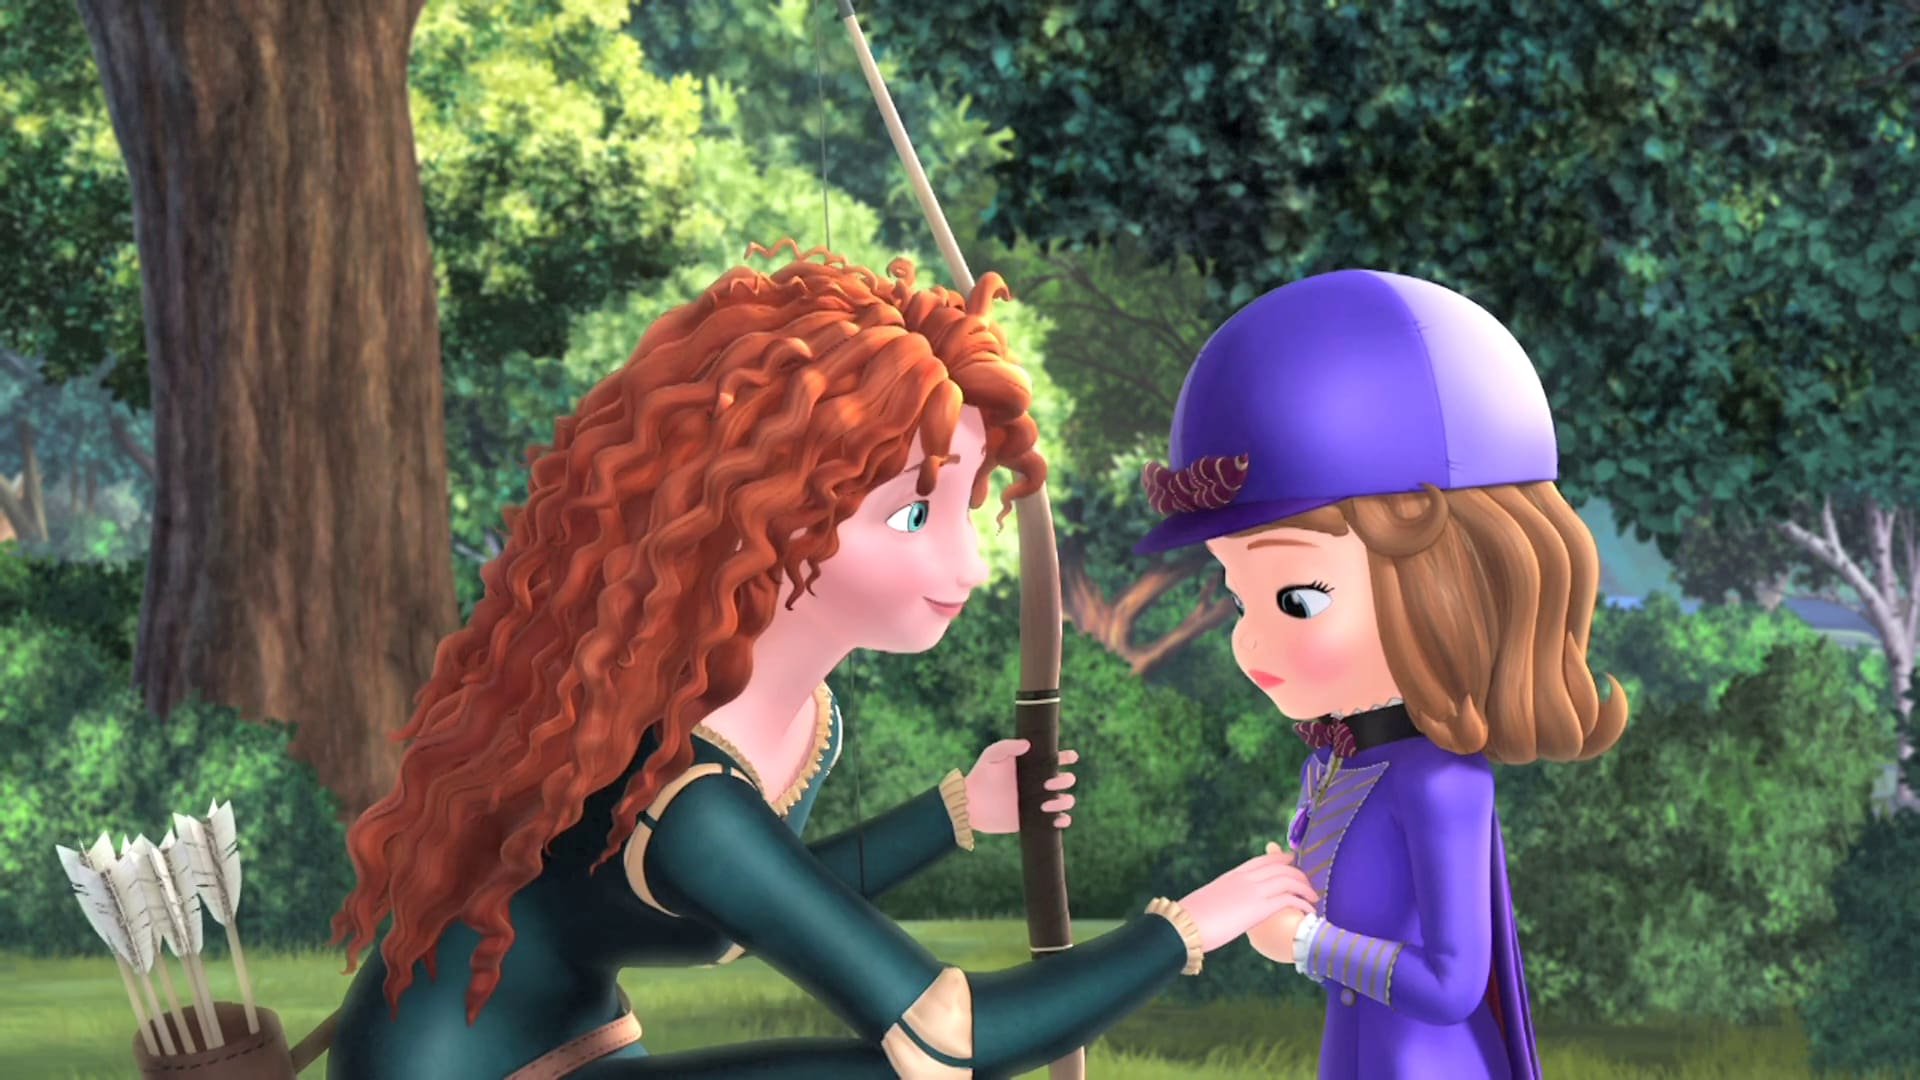 Sofia The First Products Disney Movies